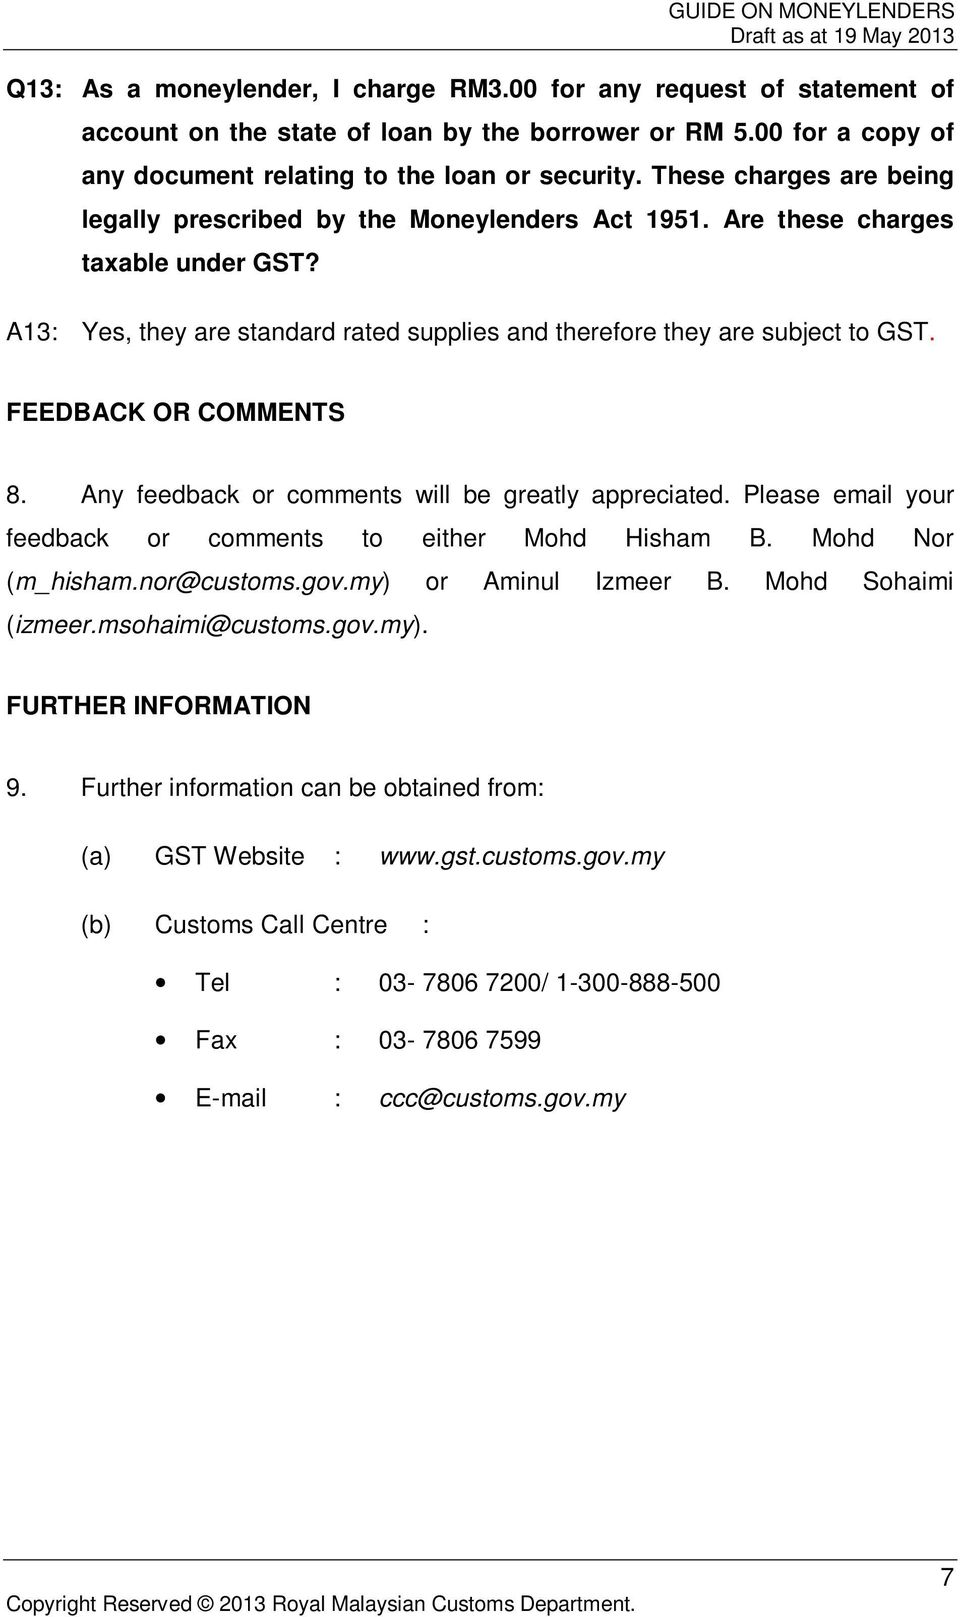 FEEDBACK OR COMMENTS 8. Any feedback or comments will be greatly appreciated. Please email your feedback or comments to either Mohd Hisham B. Mohd Nor (m_hisham.nor@customs.gov.my) or Aminul Izmeer B.